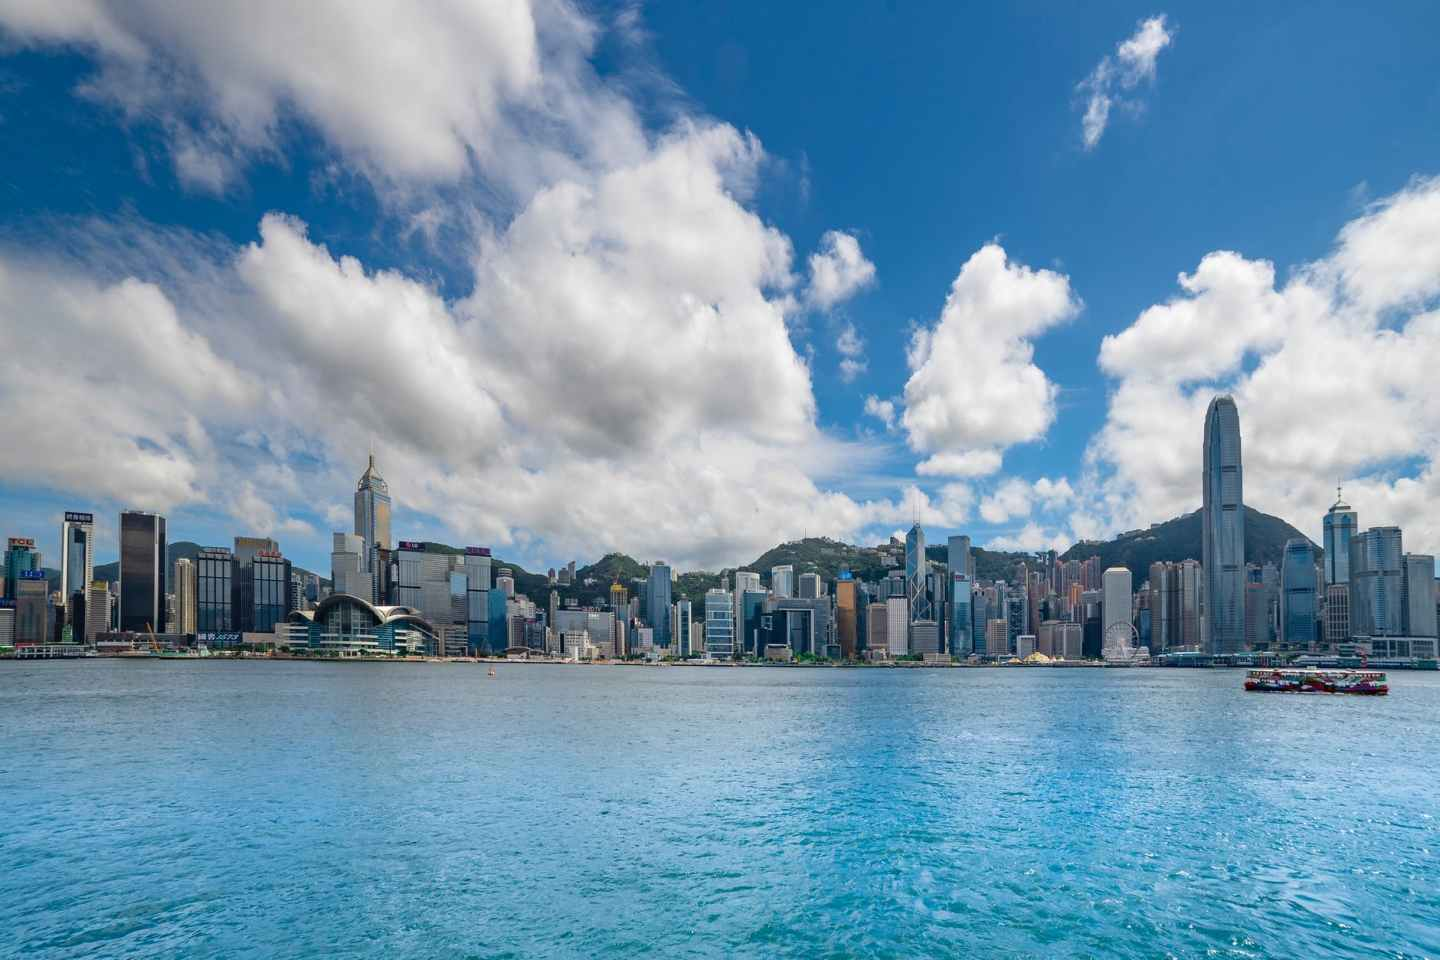 city buildings near body of water under blue sky and white clouds